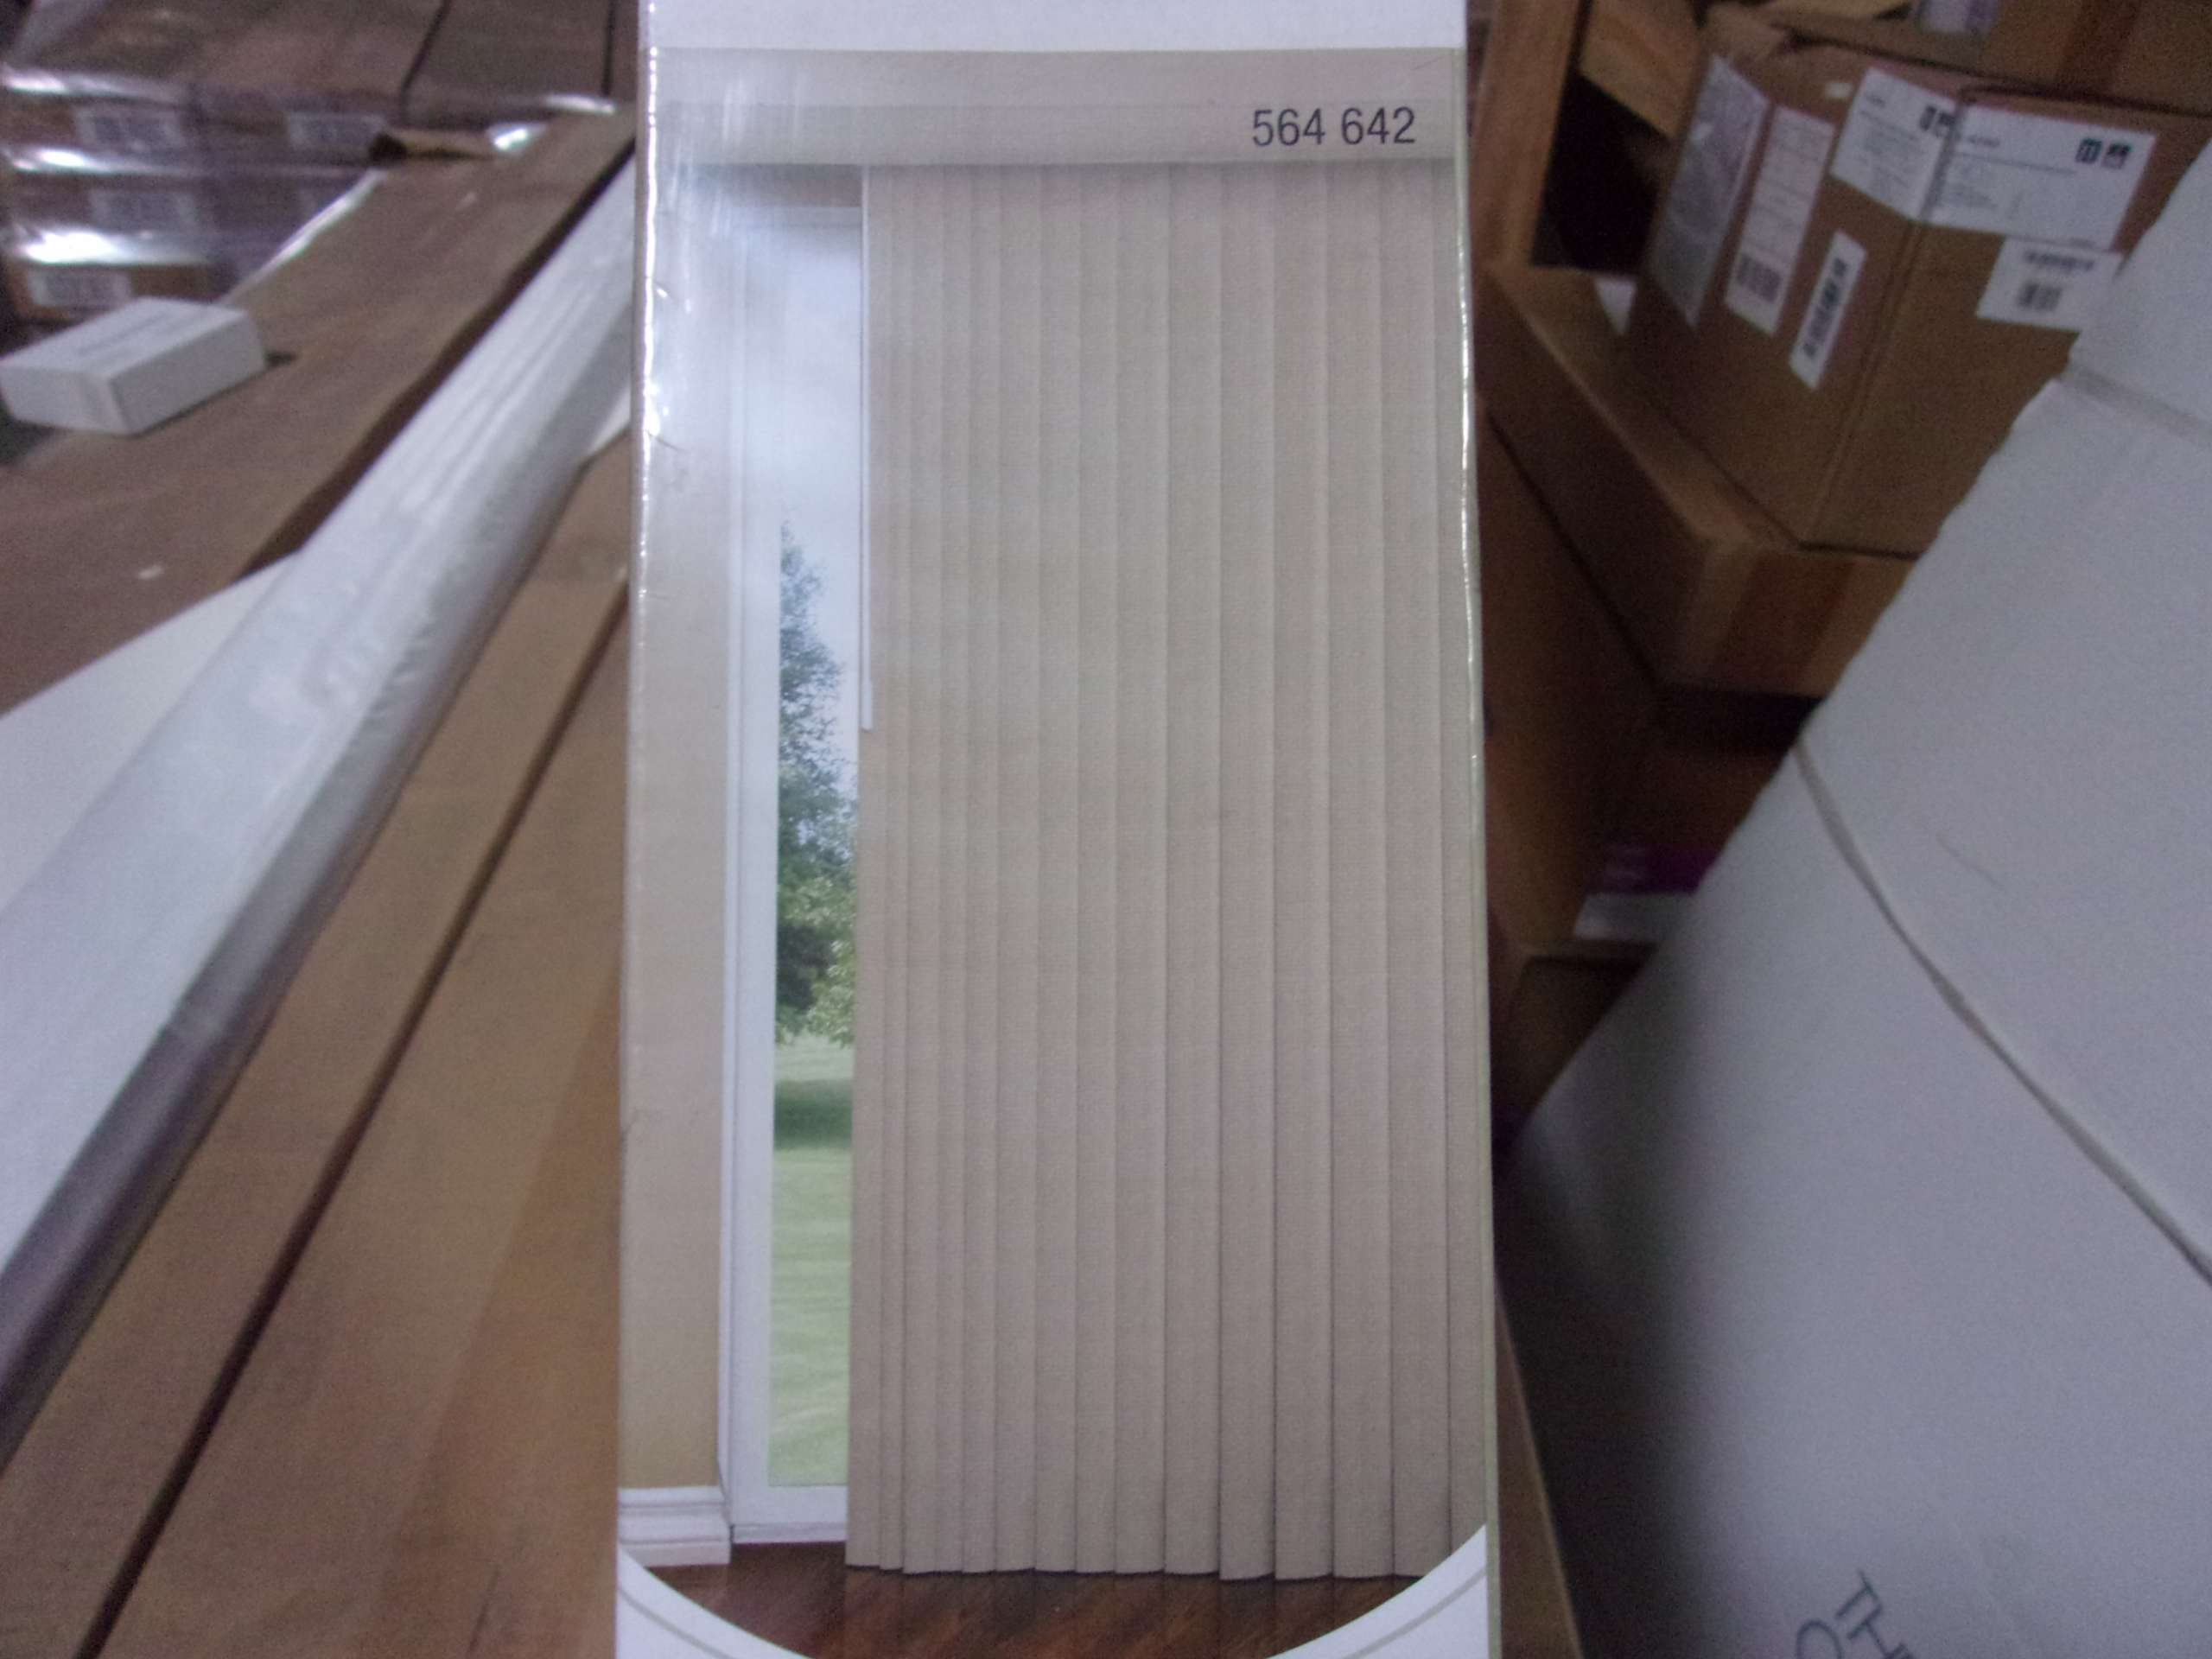 Designview 78 X 84 Mosaic 3 1 2 Vertical Blinds In Tan 564642